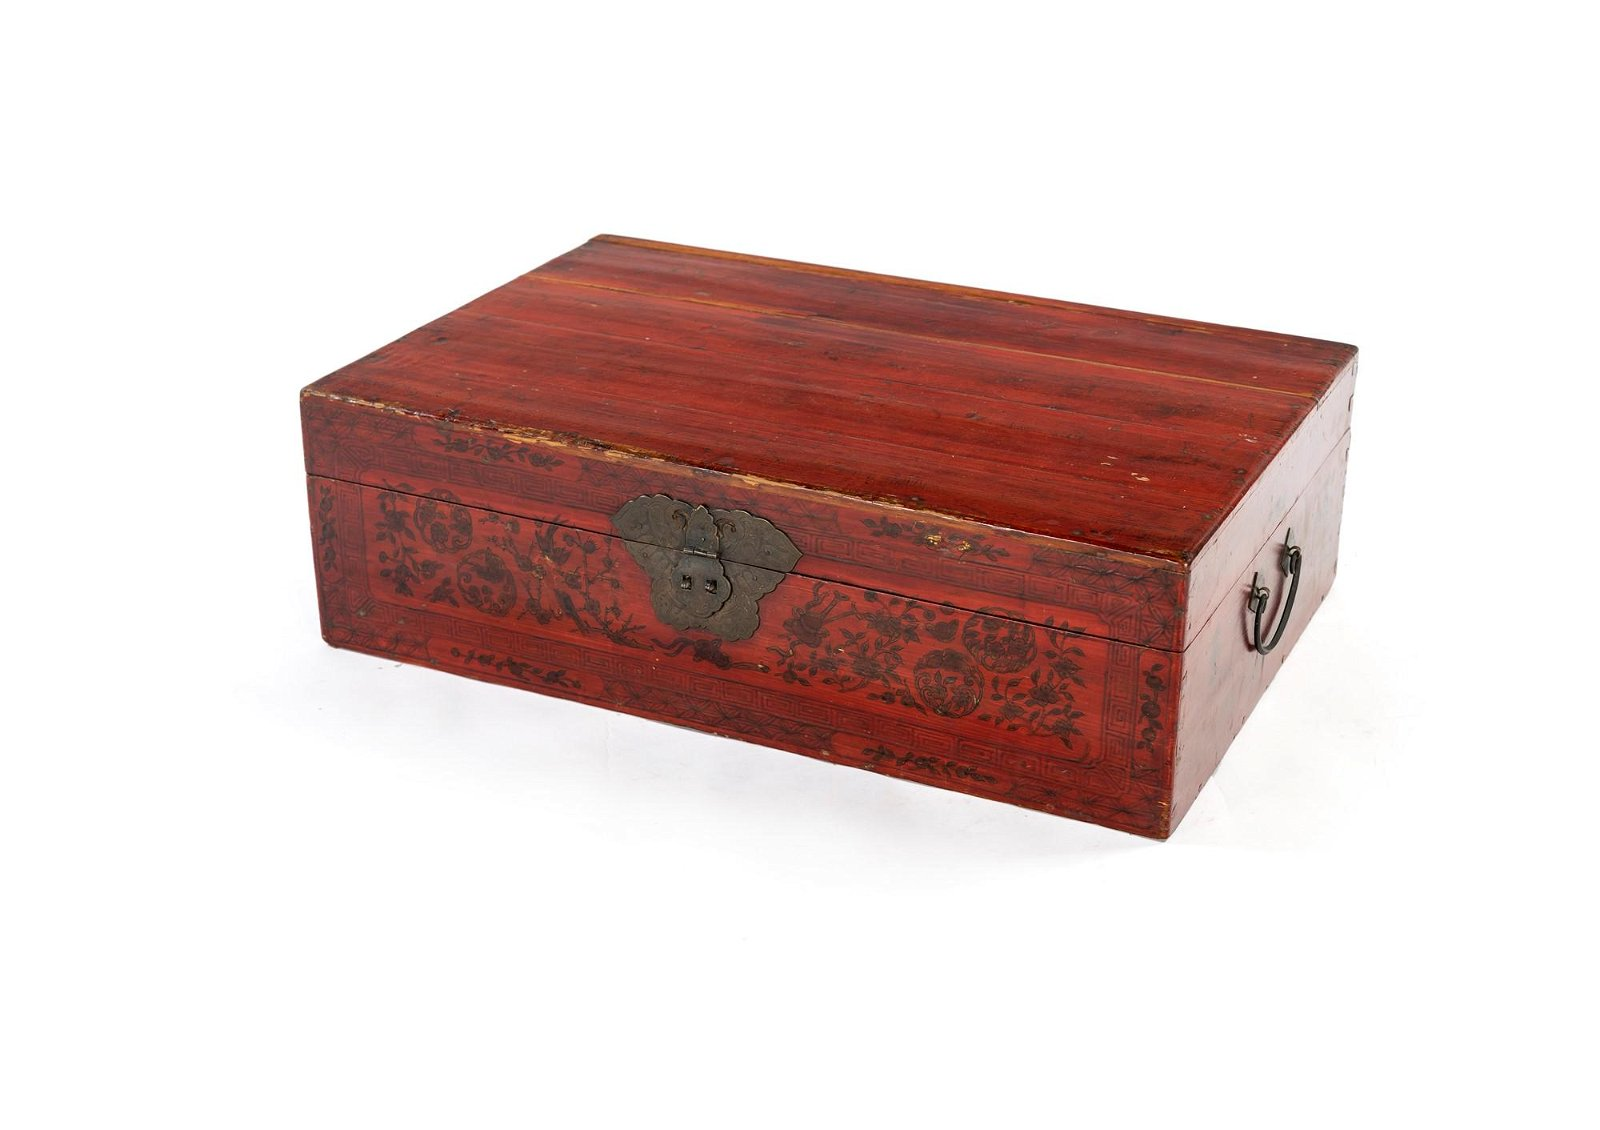 Large red lacquered wooden case